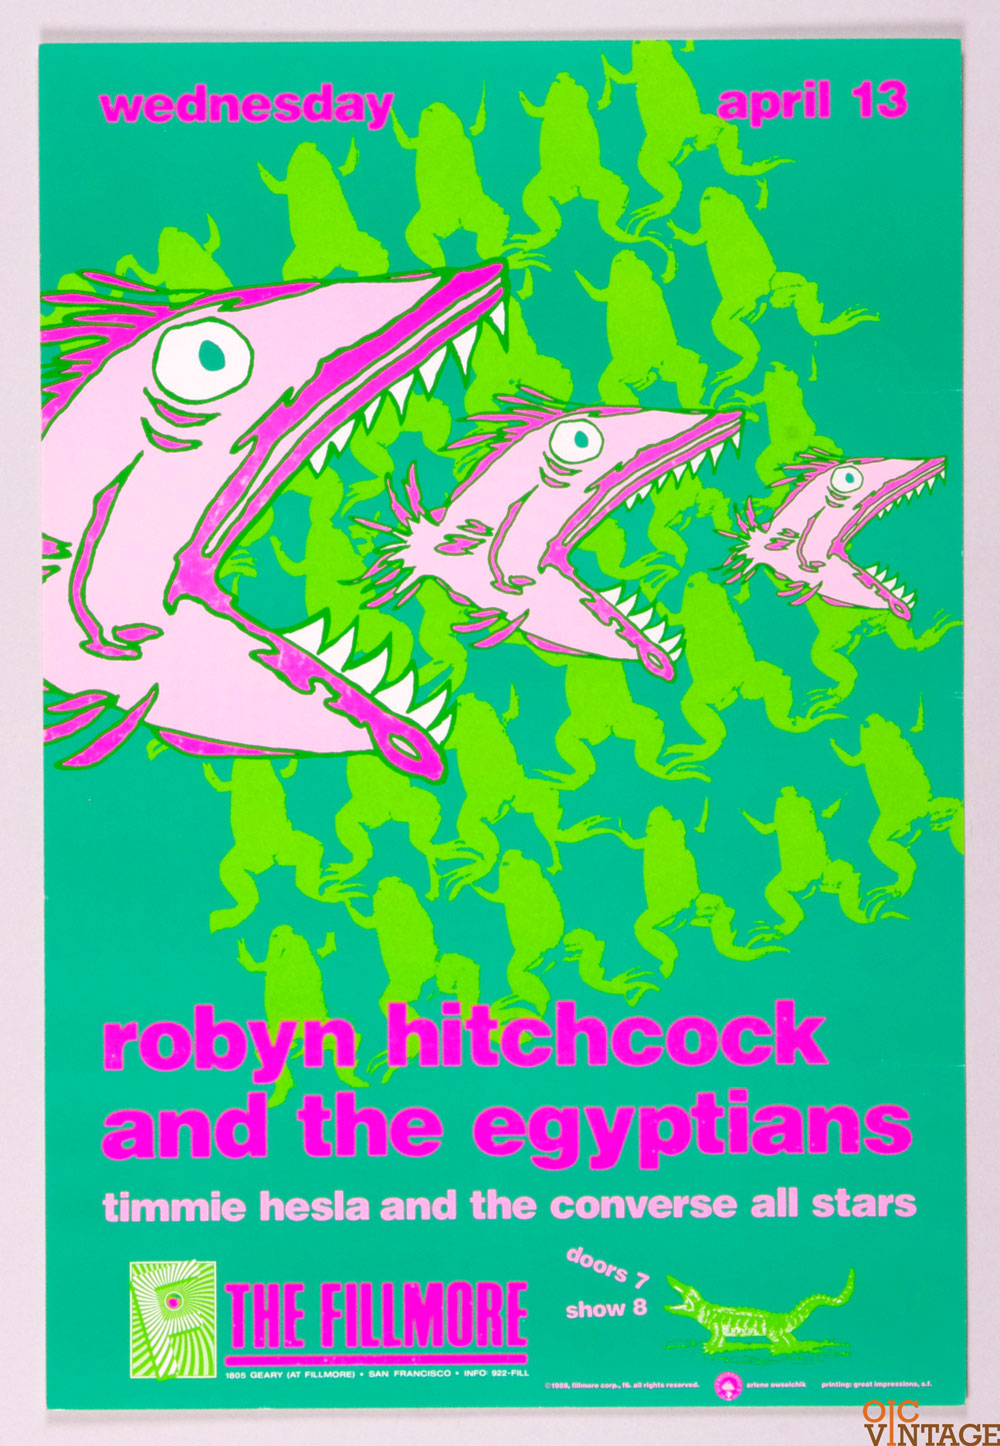 New Fillmore F006 Poster Robyn Hitchcock and the Egyptians 1988 Apr 13